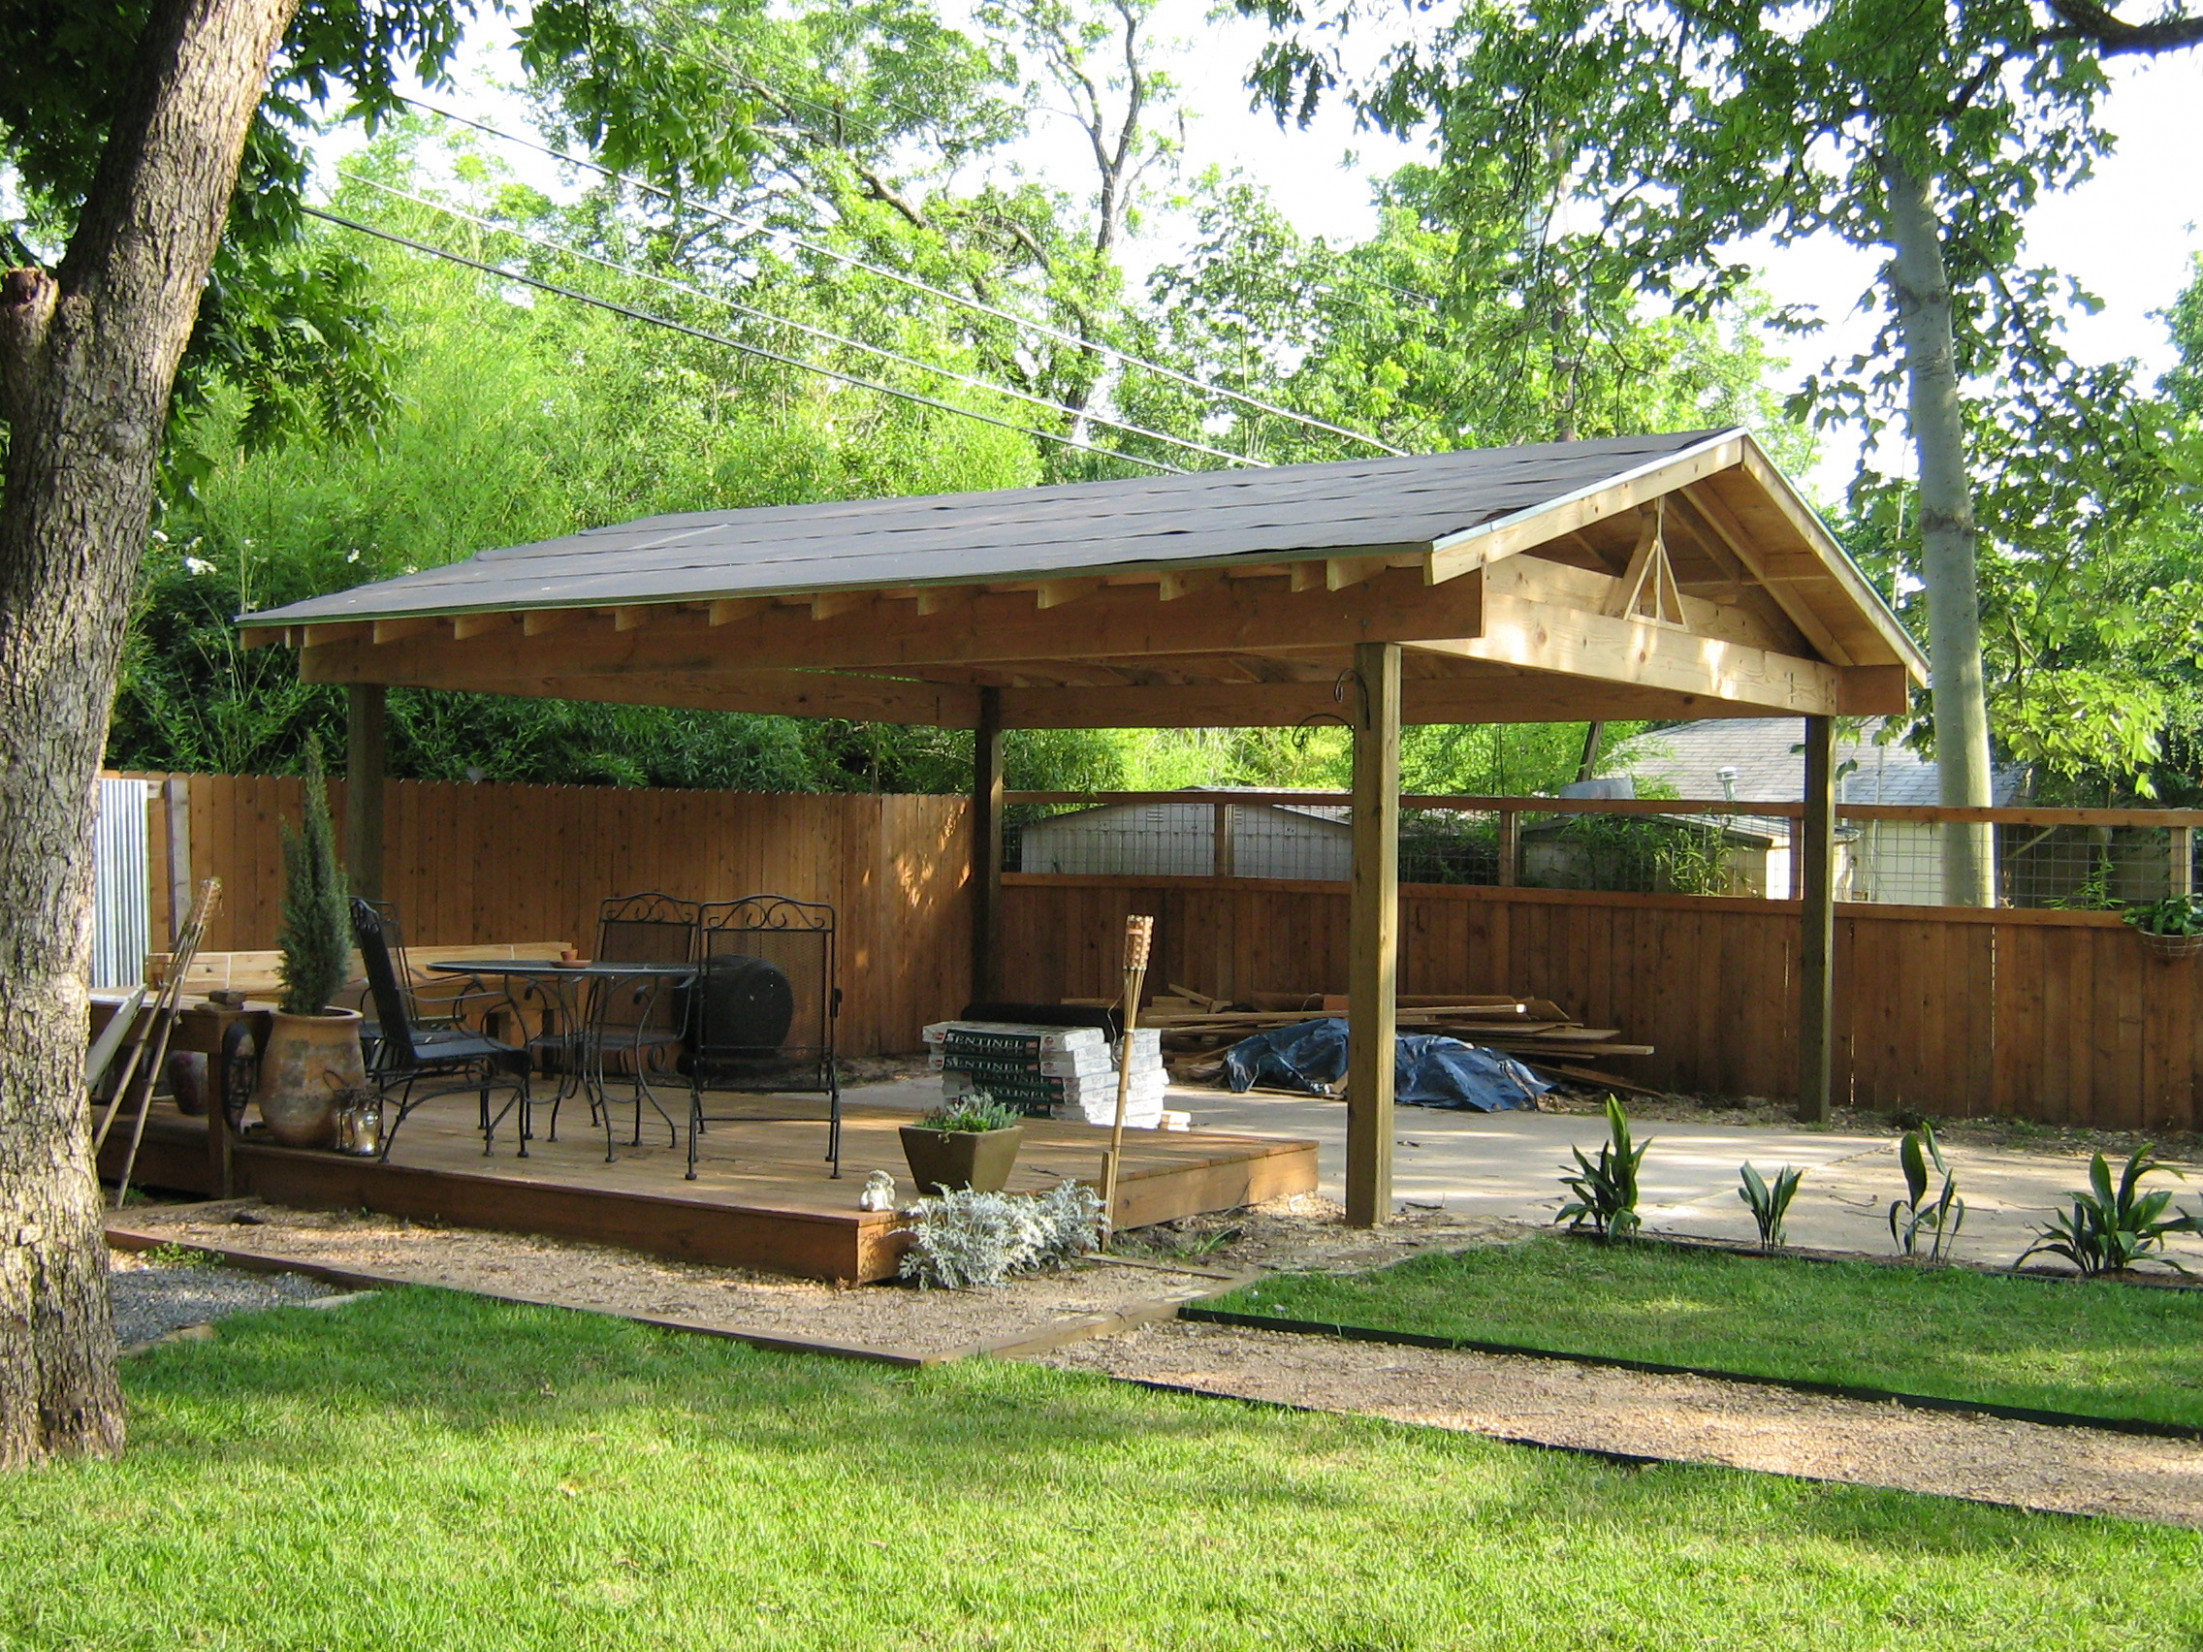 How To Build Wood Carport Kits Do It Yourself Plans ..